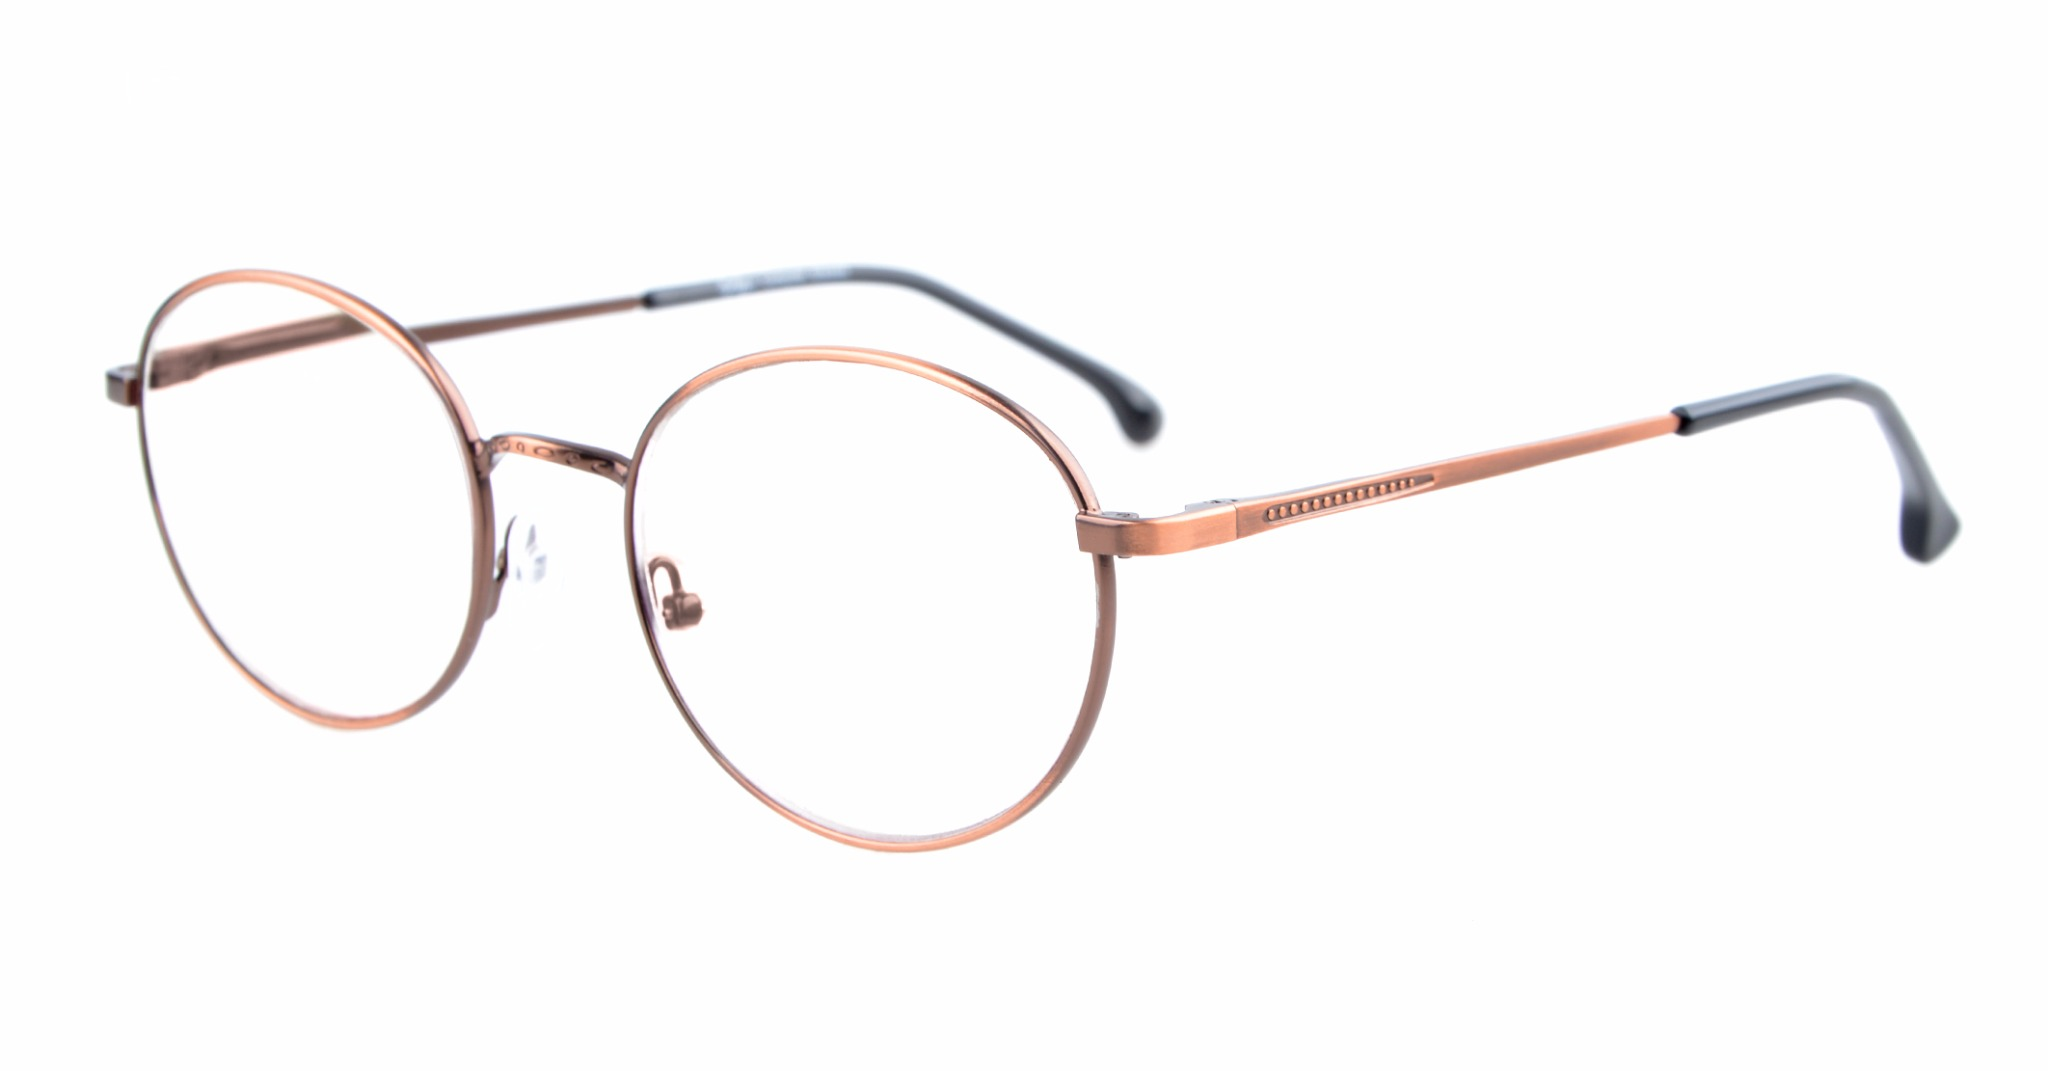 Eyekepper Quality Spring Temples Oval Round Glasses Eyeglasses Frame R1616-Anti Bronze-0.0